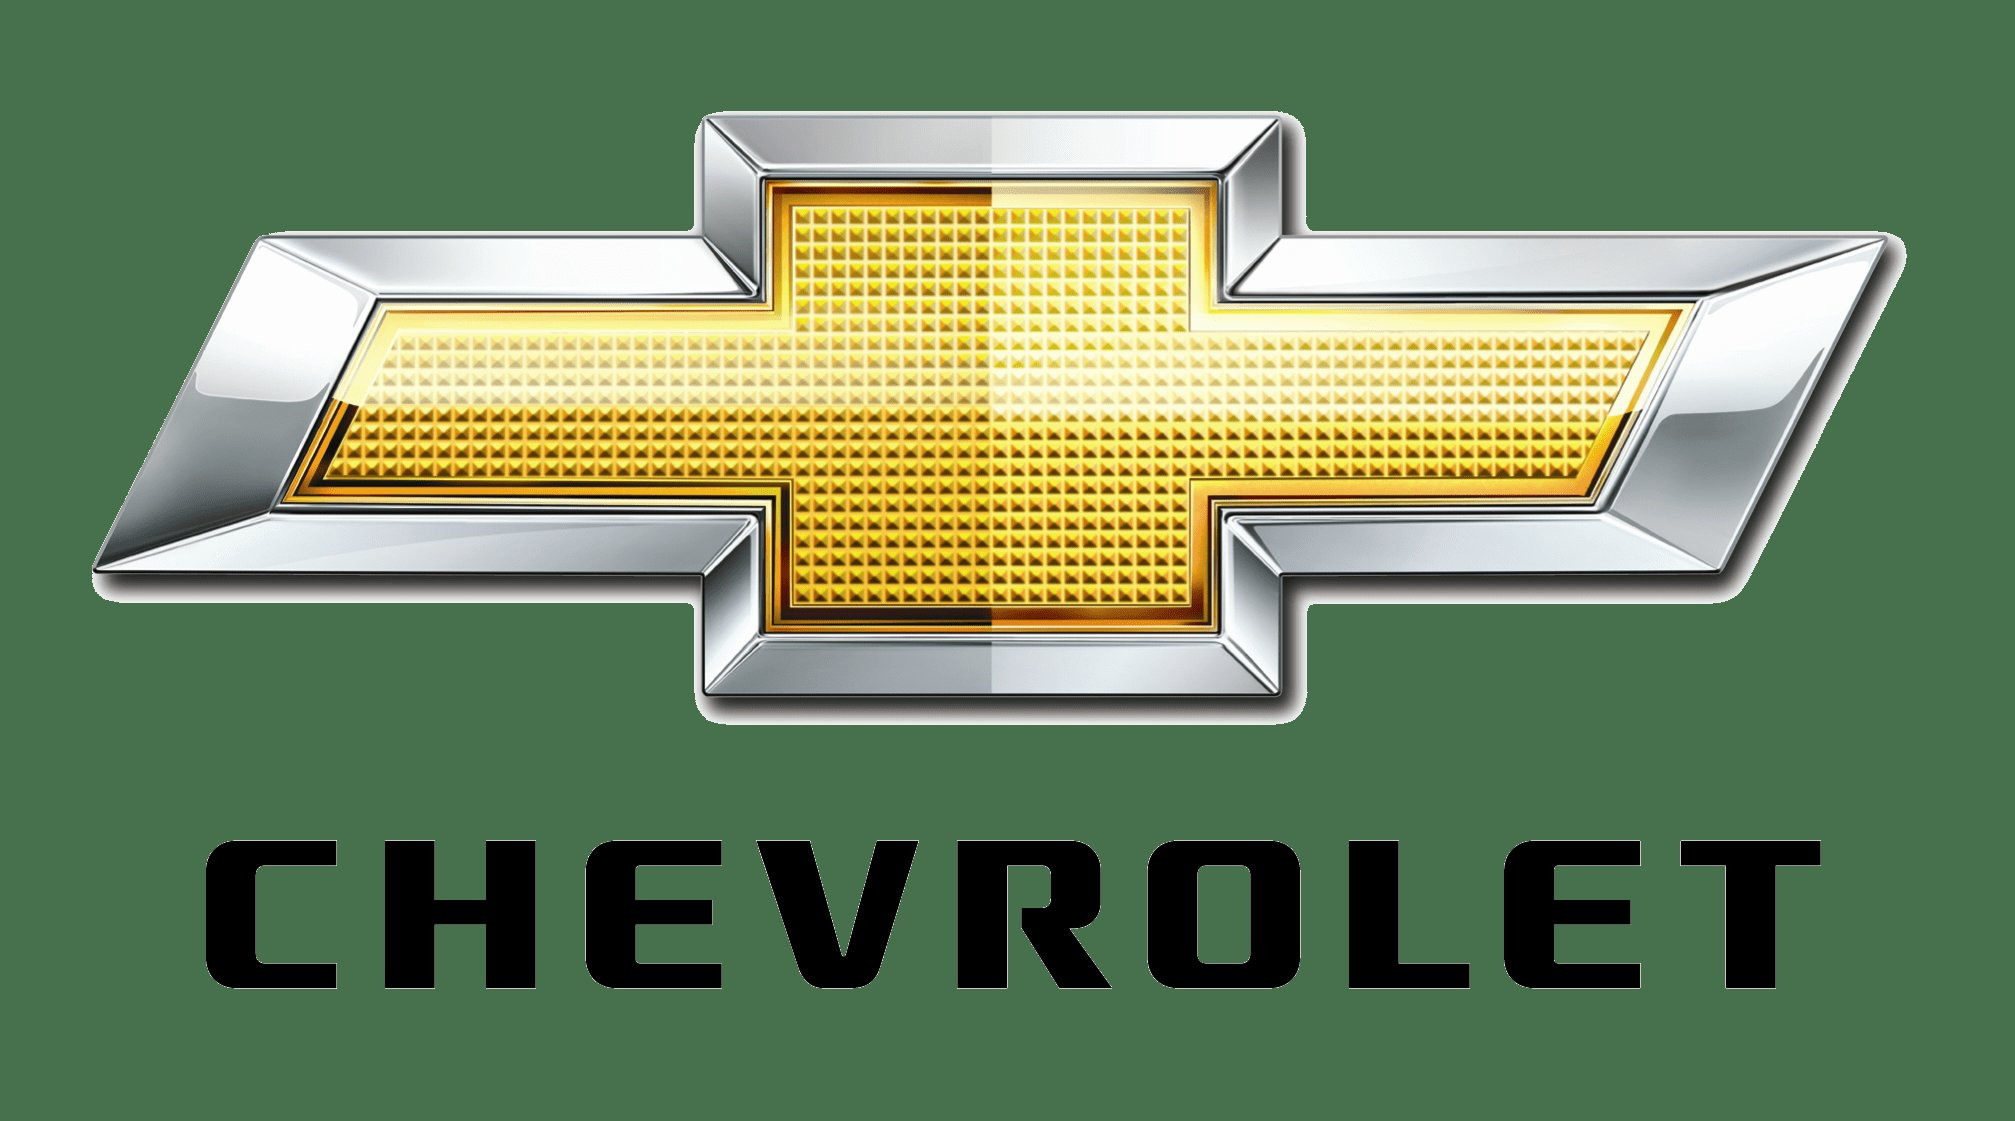 New Chevy Logo Chevrolet Car Symbol Meaning And History Car On This Month